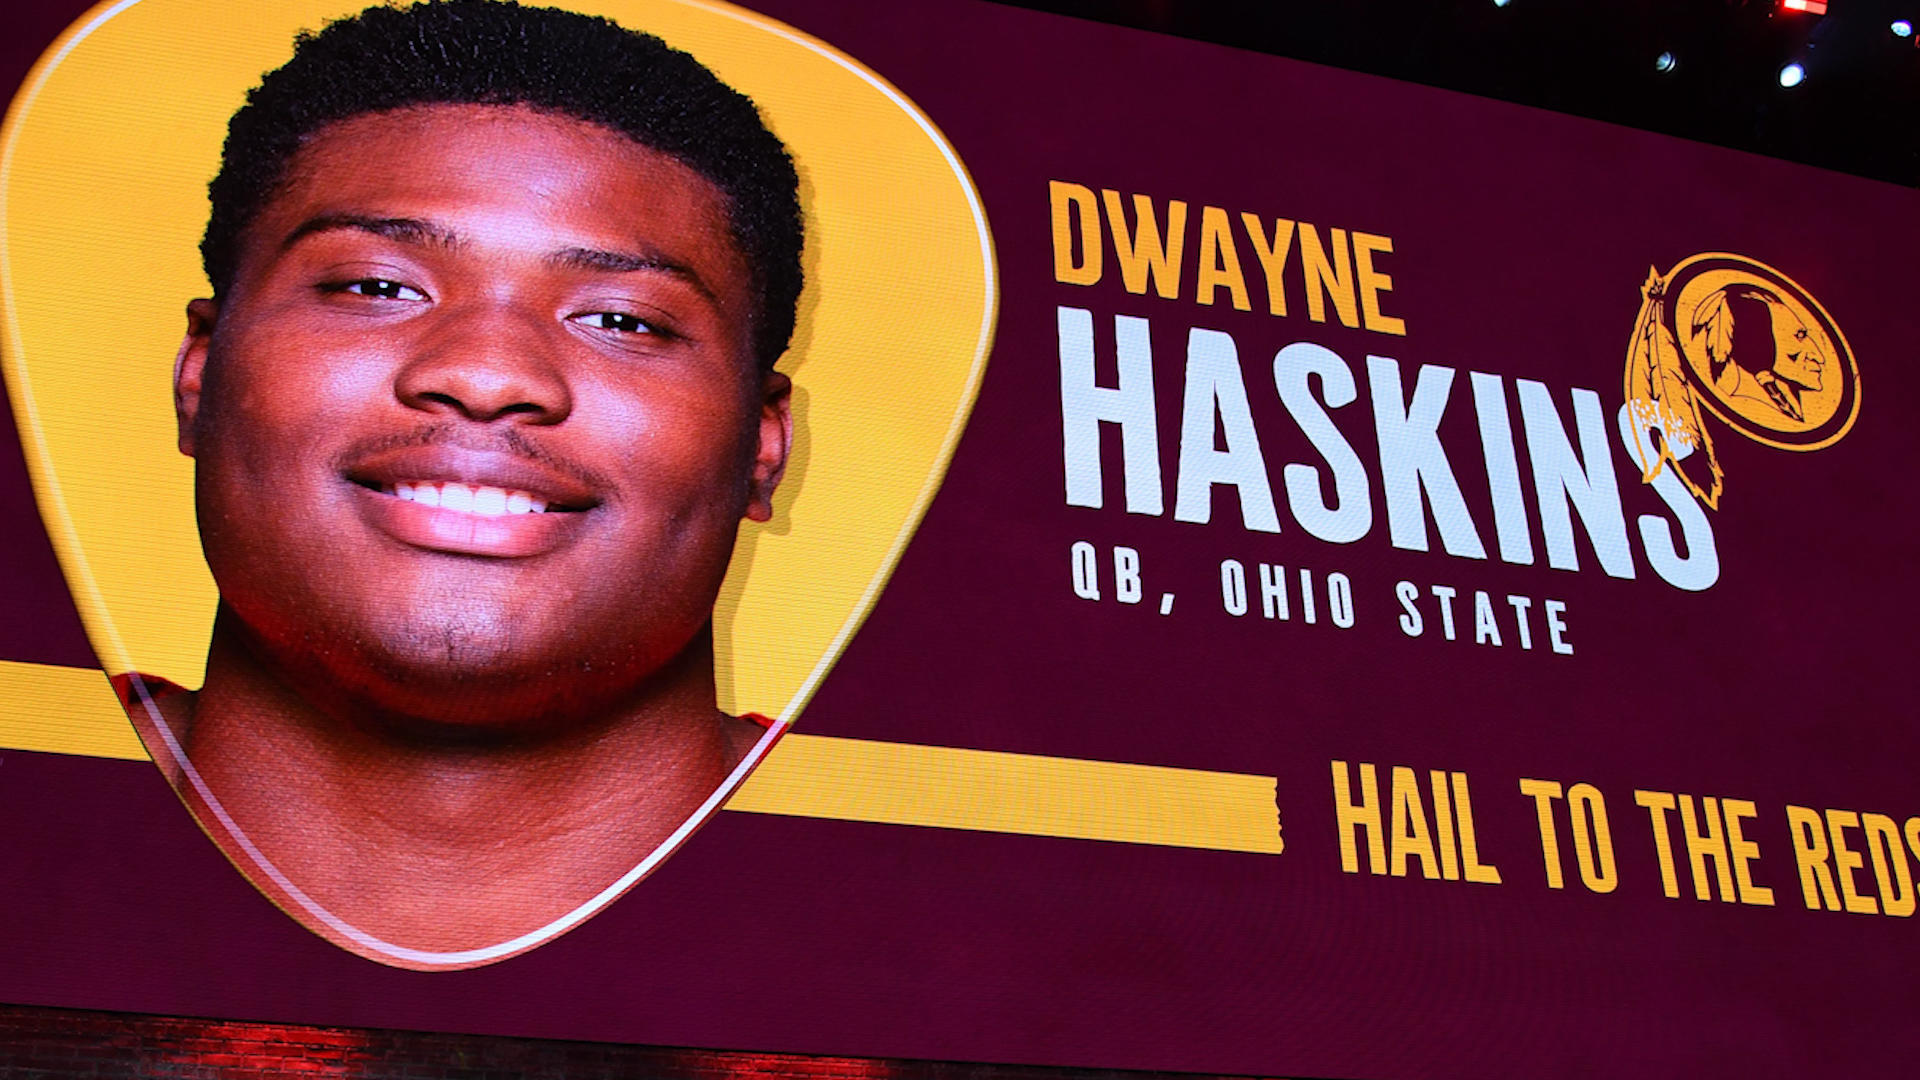 NFL Draft 2019: Dwayne Haskins says 'the league done messed up' after being the third quarterback taken